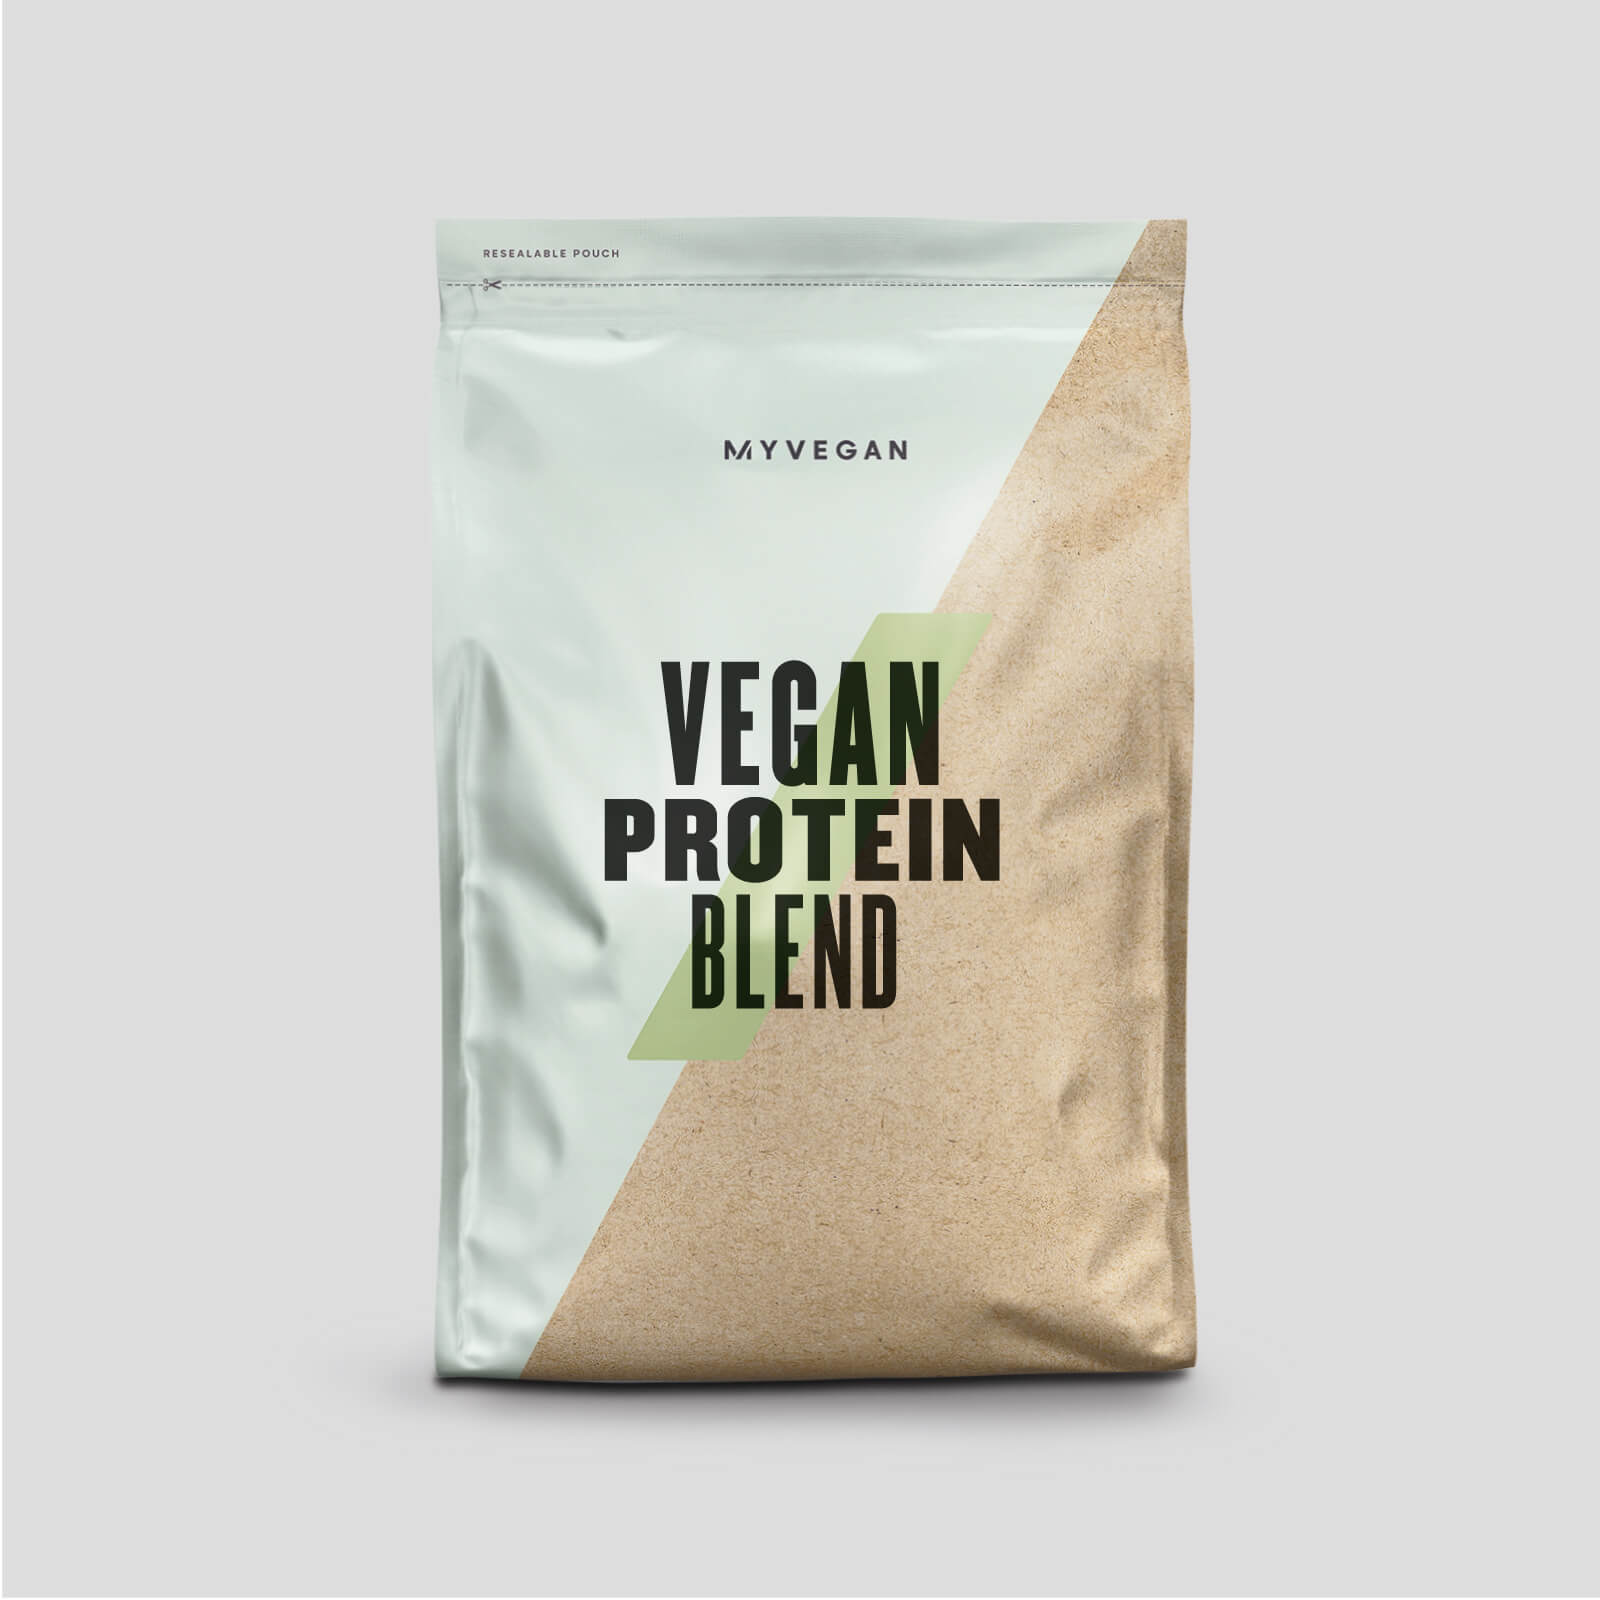 Vegane Protein-Mischung - 2.5kg - Blueberry and Cinnamon